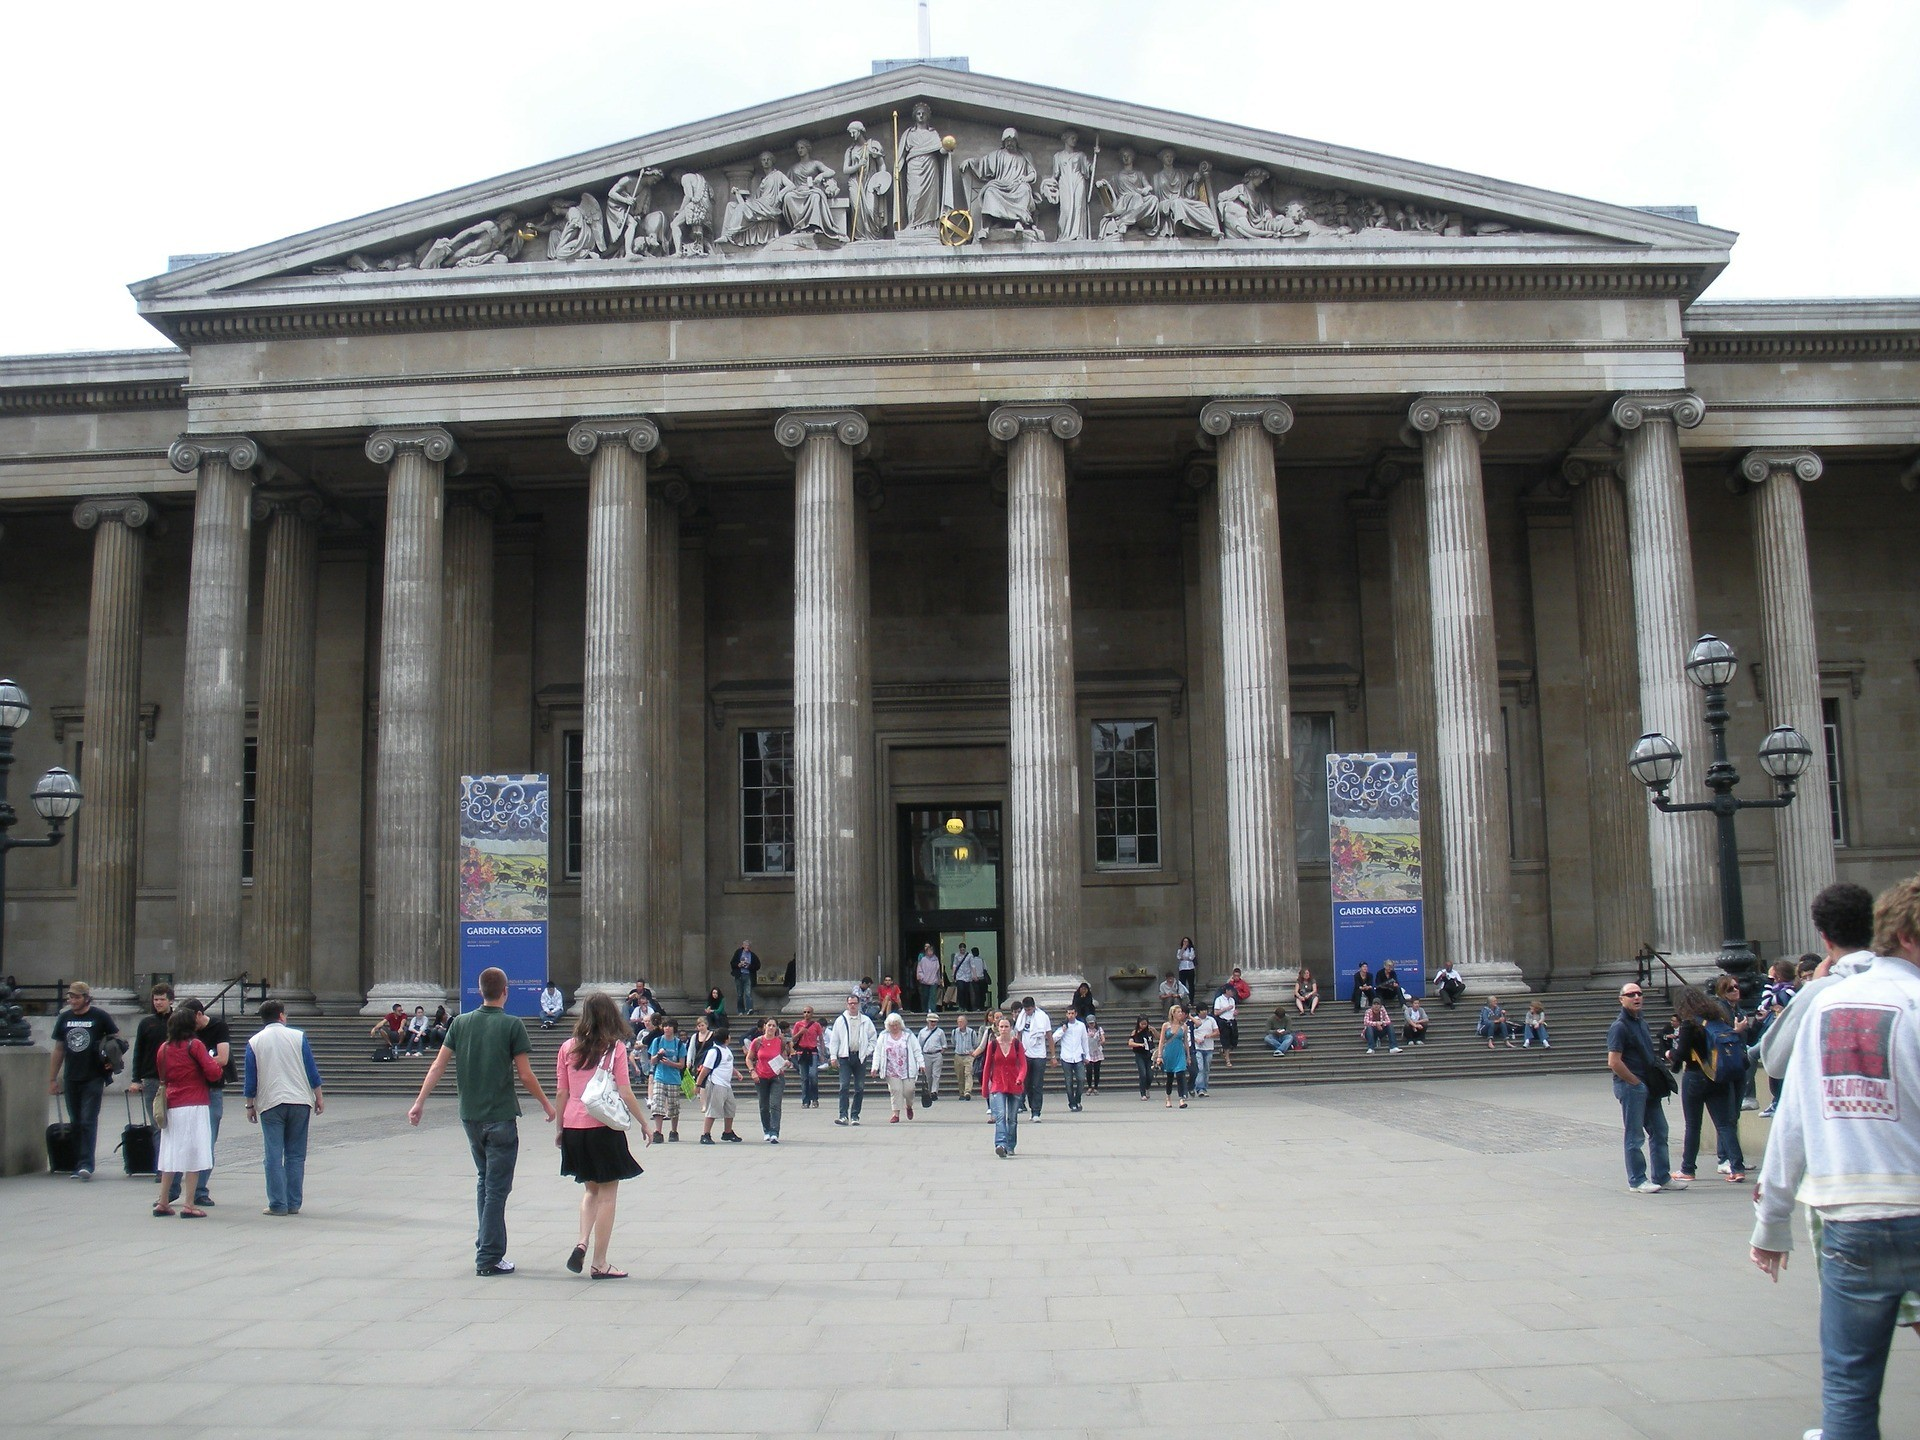 The British Museum, London: All year